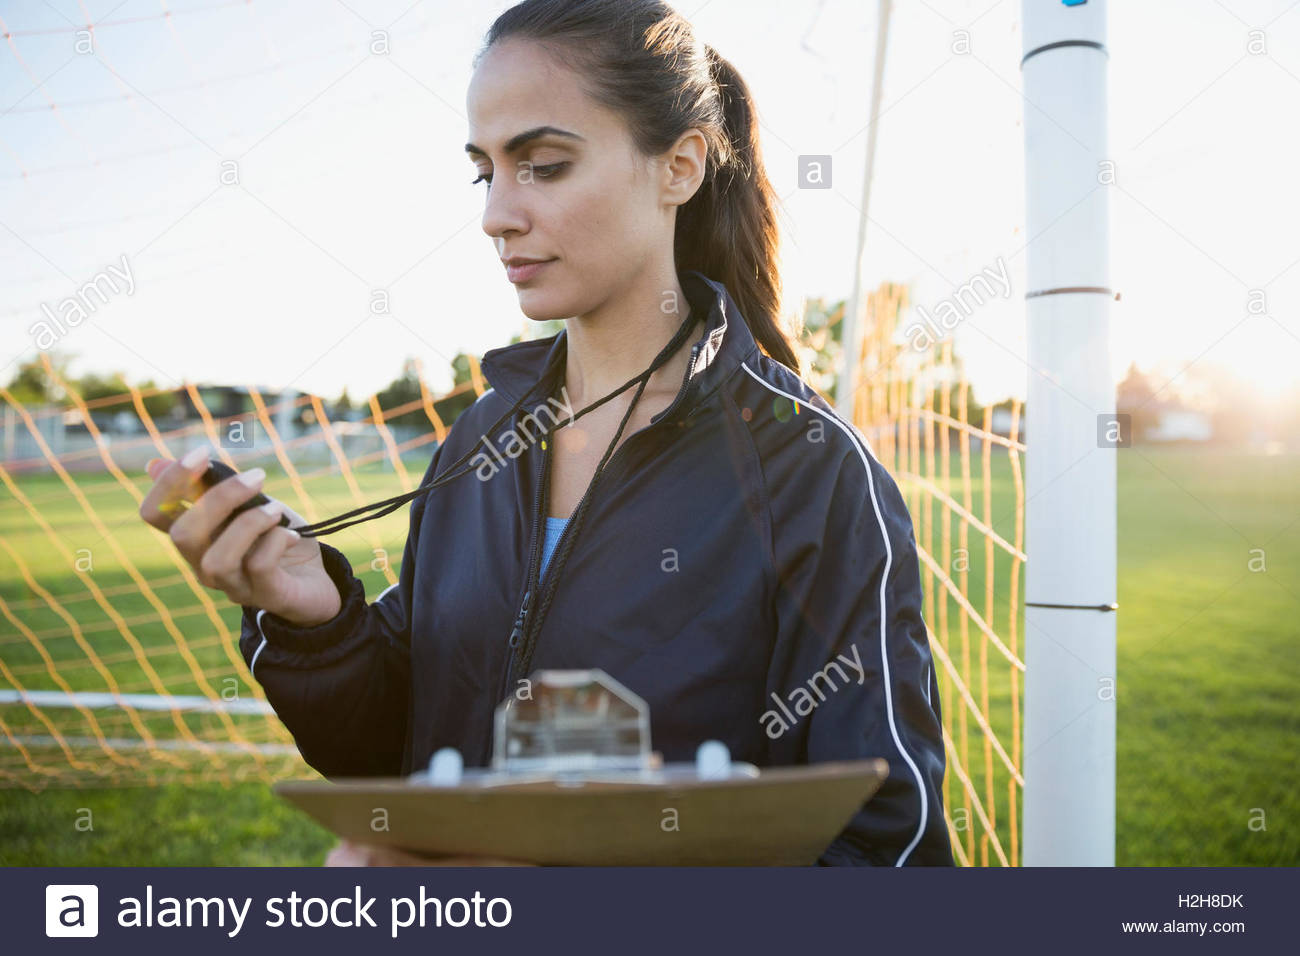 Soccer coach with stopwatch and clipboard at goal net - Stock Image